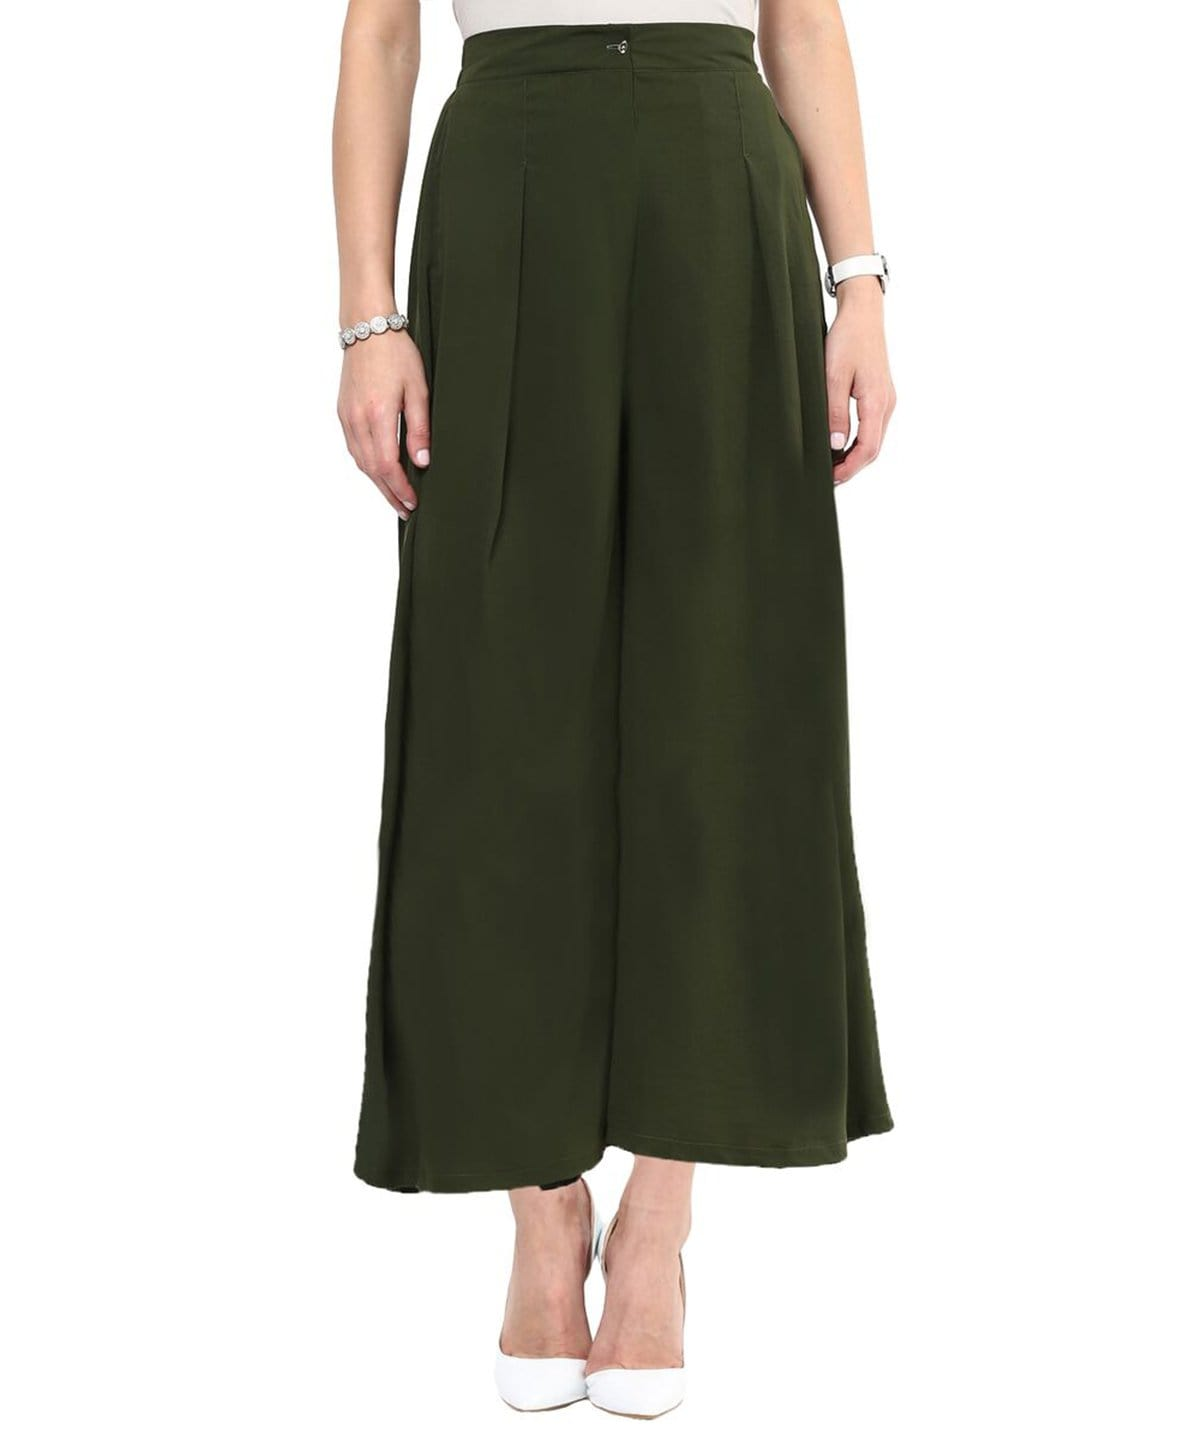 Uptownie Olive Green Palazzo 1 Sale at 399, CLEARANCE SALE